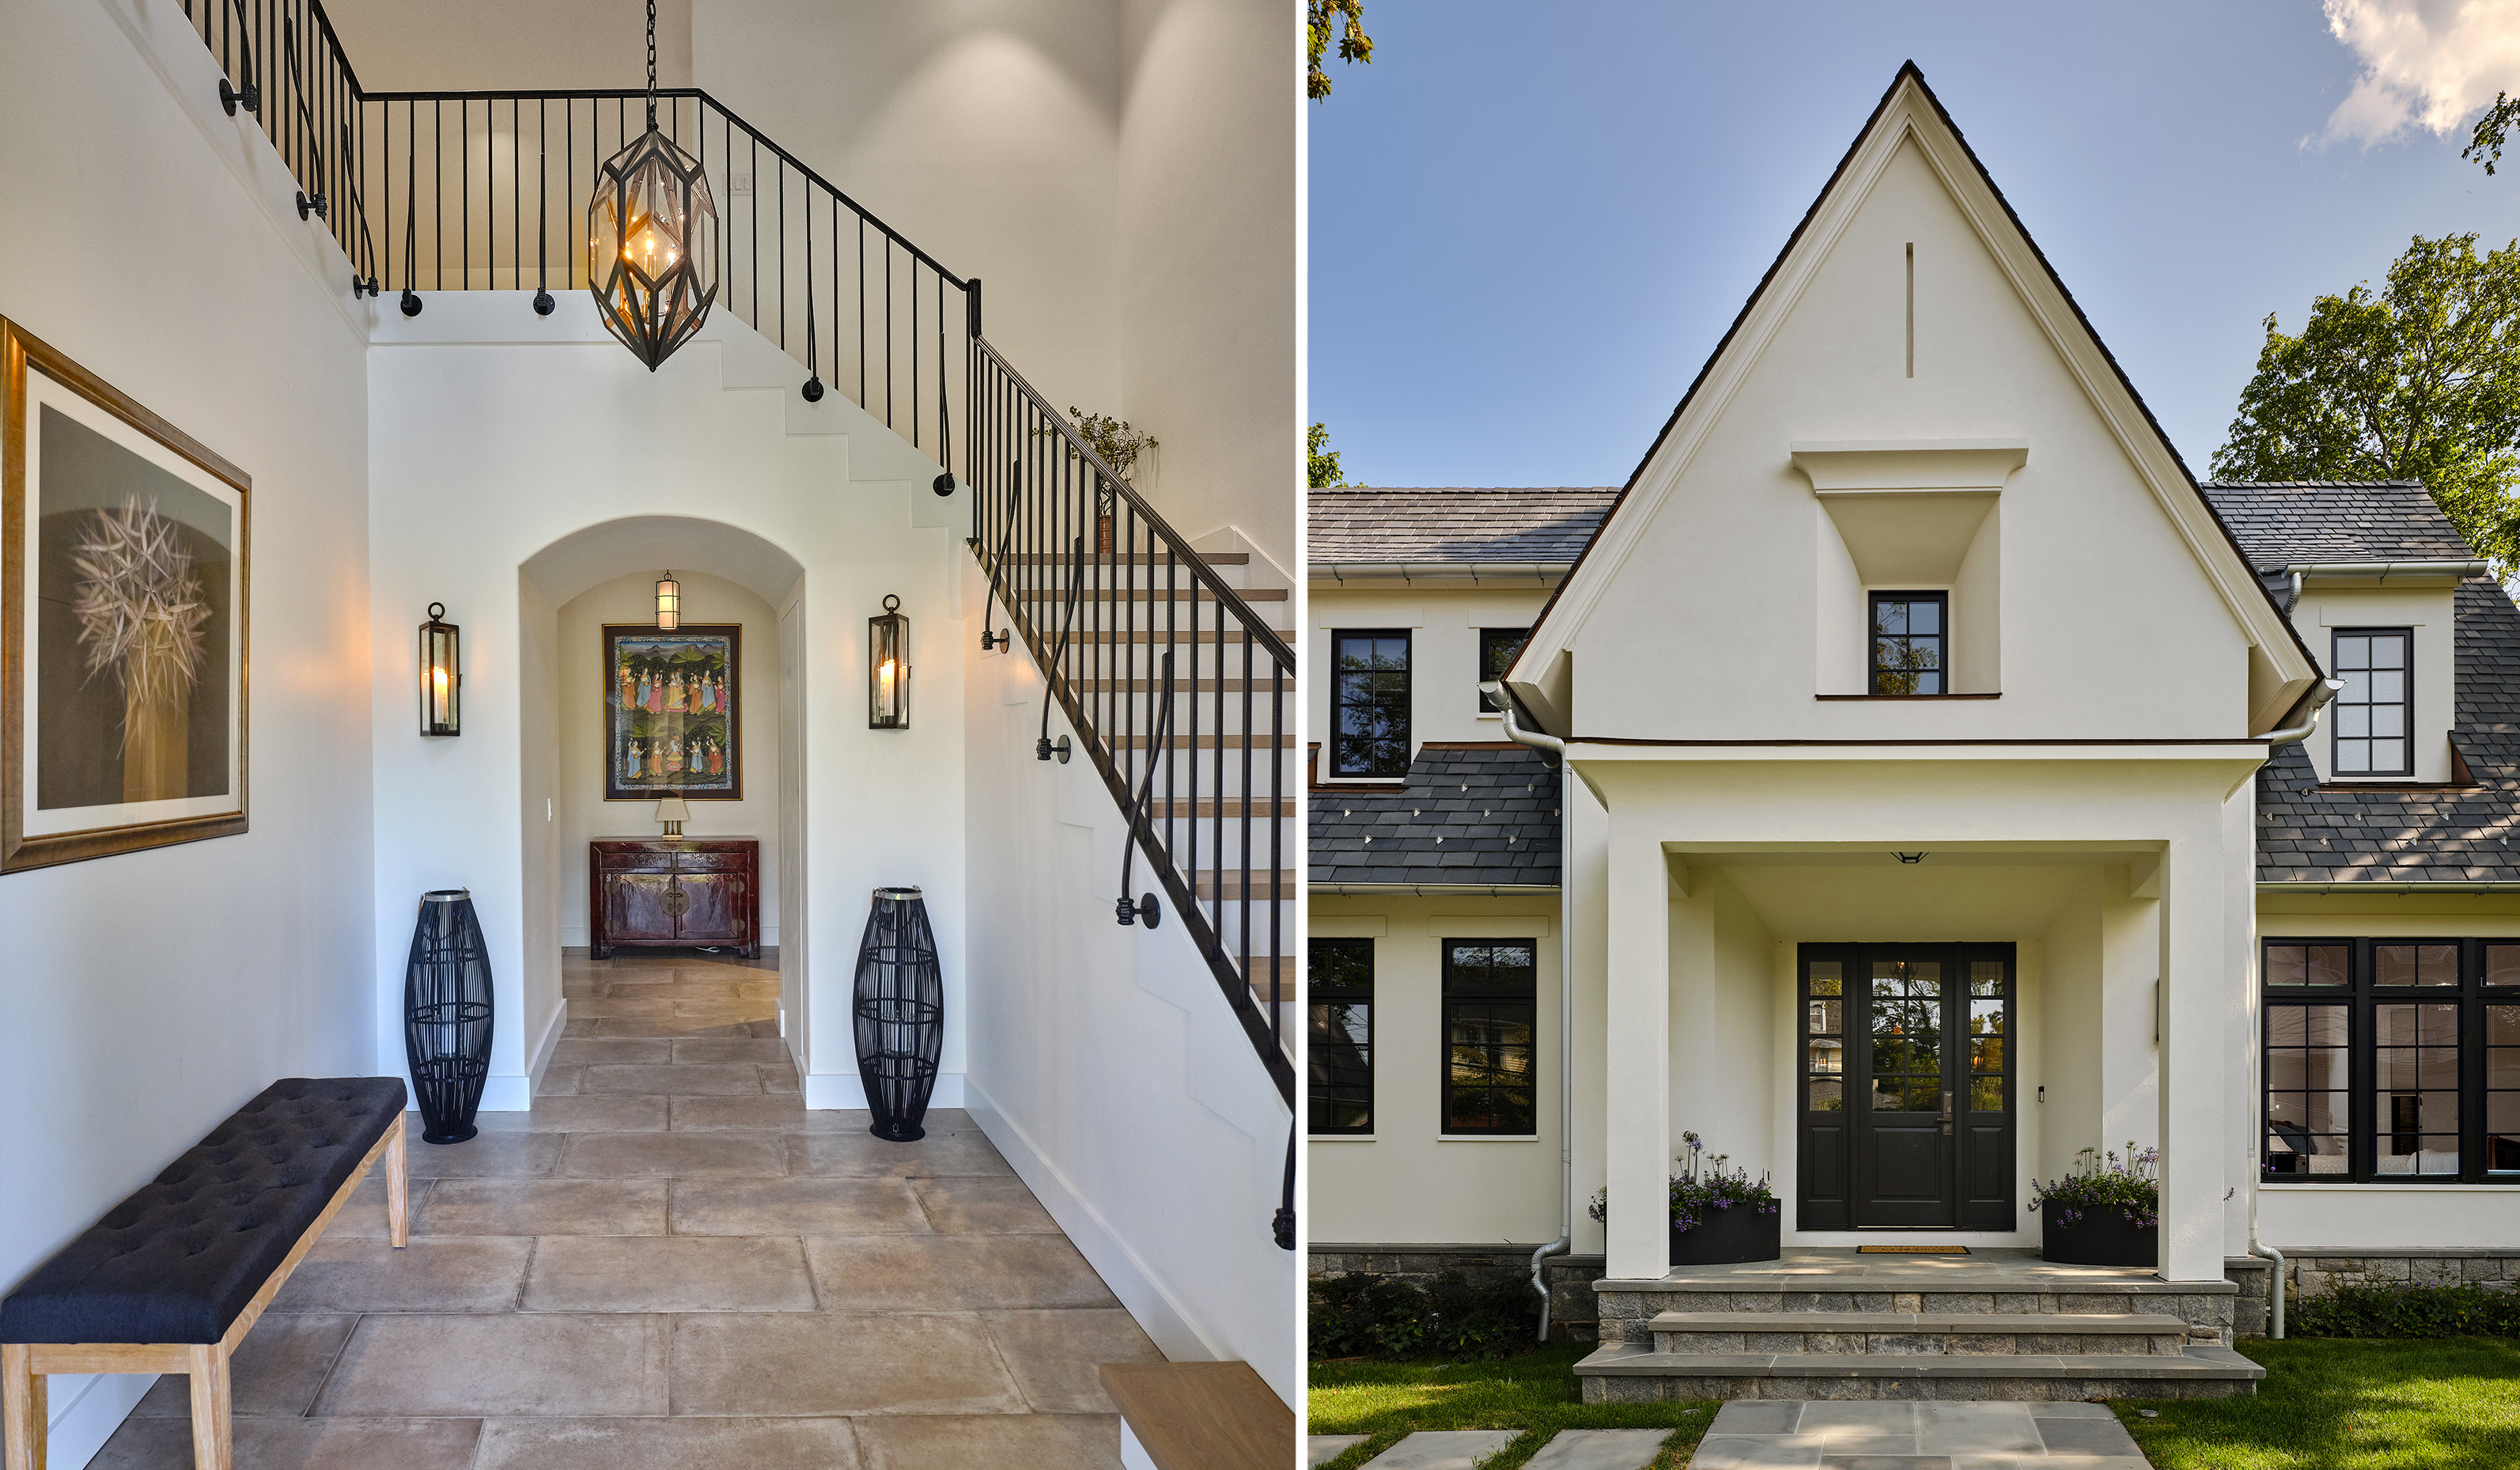 Larchmont NY custom stucco cottage grand foyer entry stair by custom luxury waterfront architect